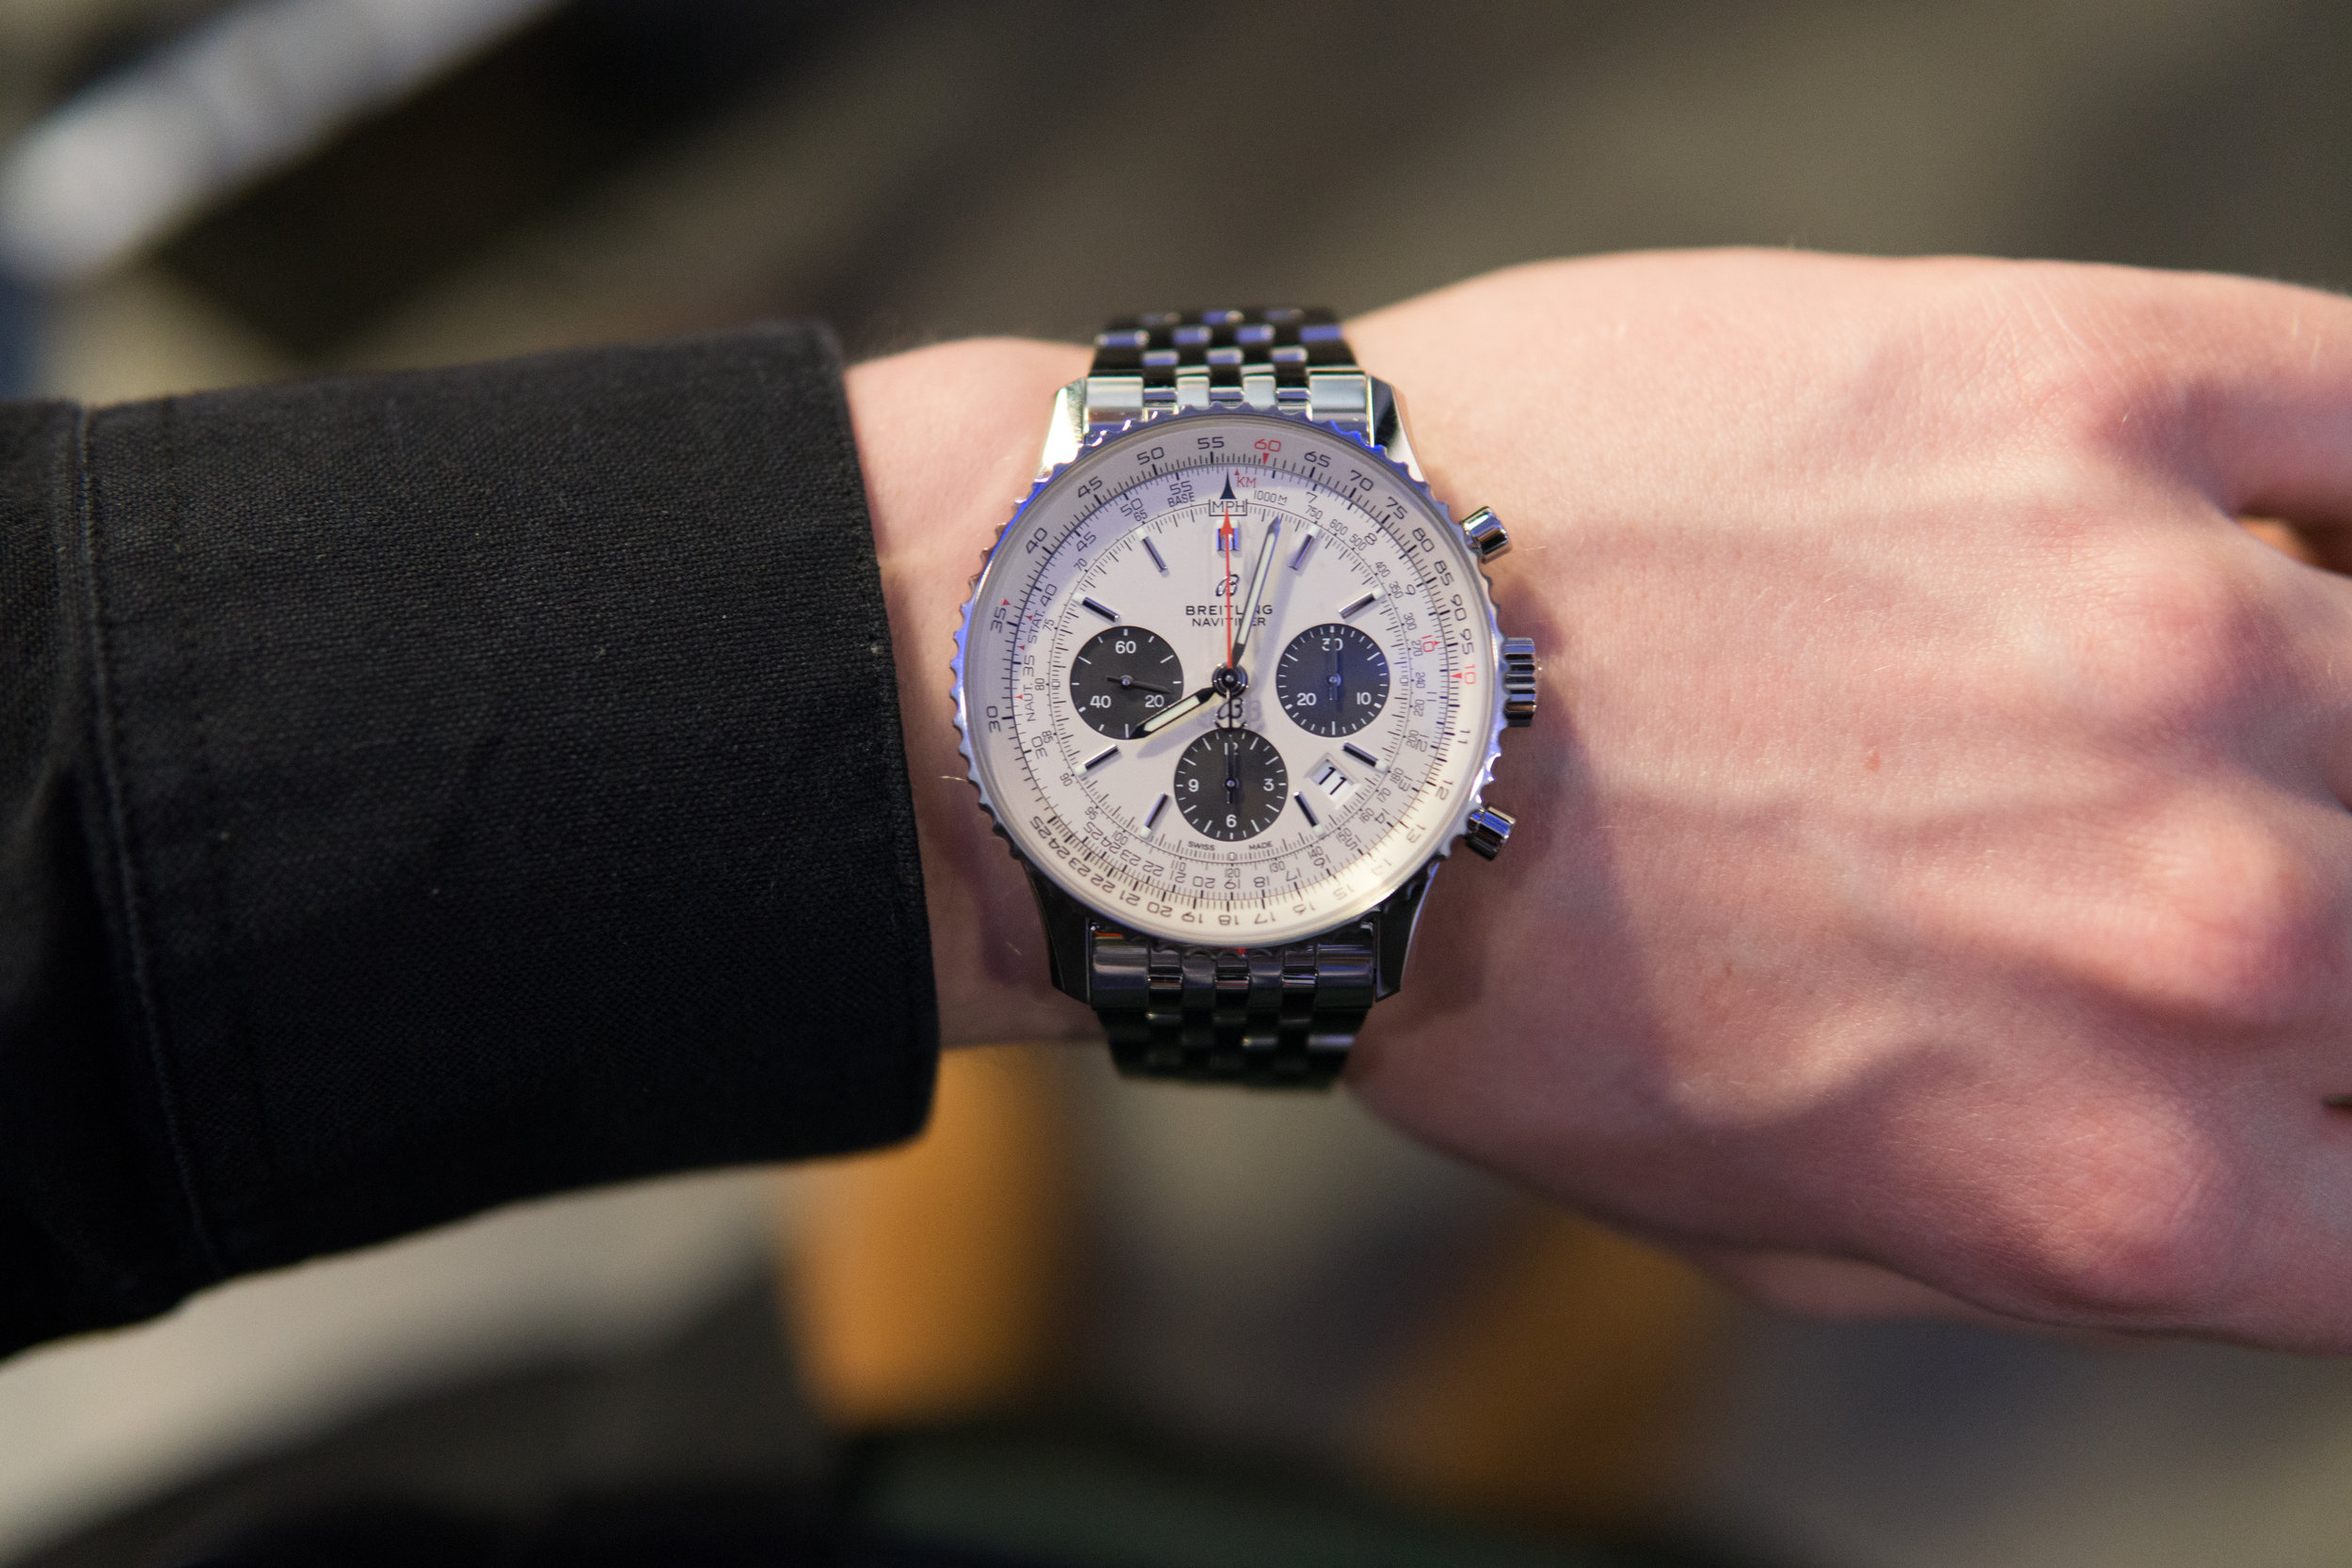 The new Breitling Navitimer boasts the new logo and a sapphire caseback.